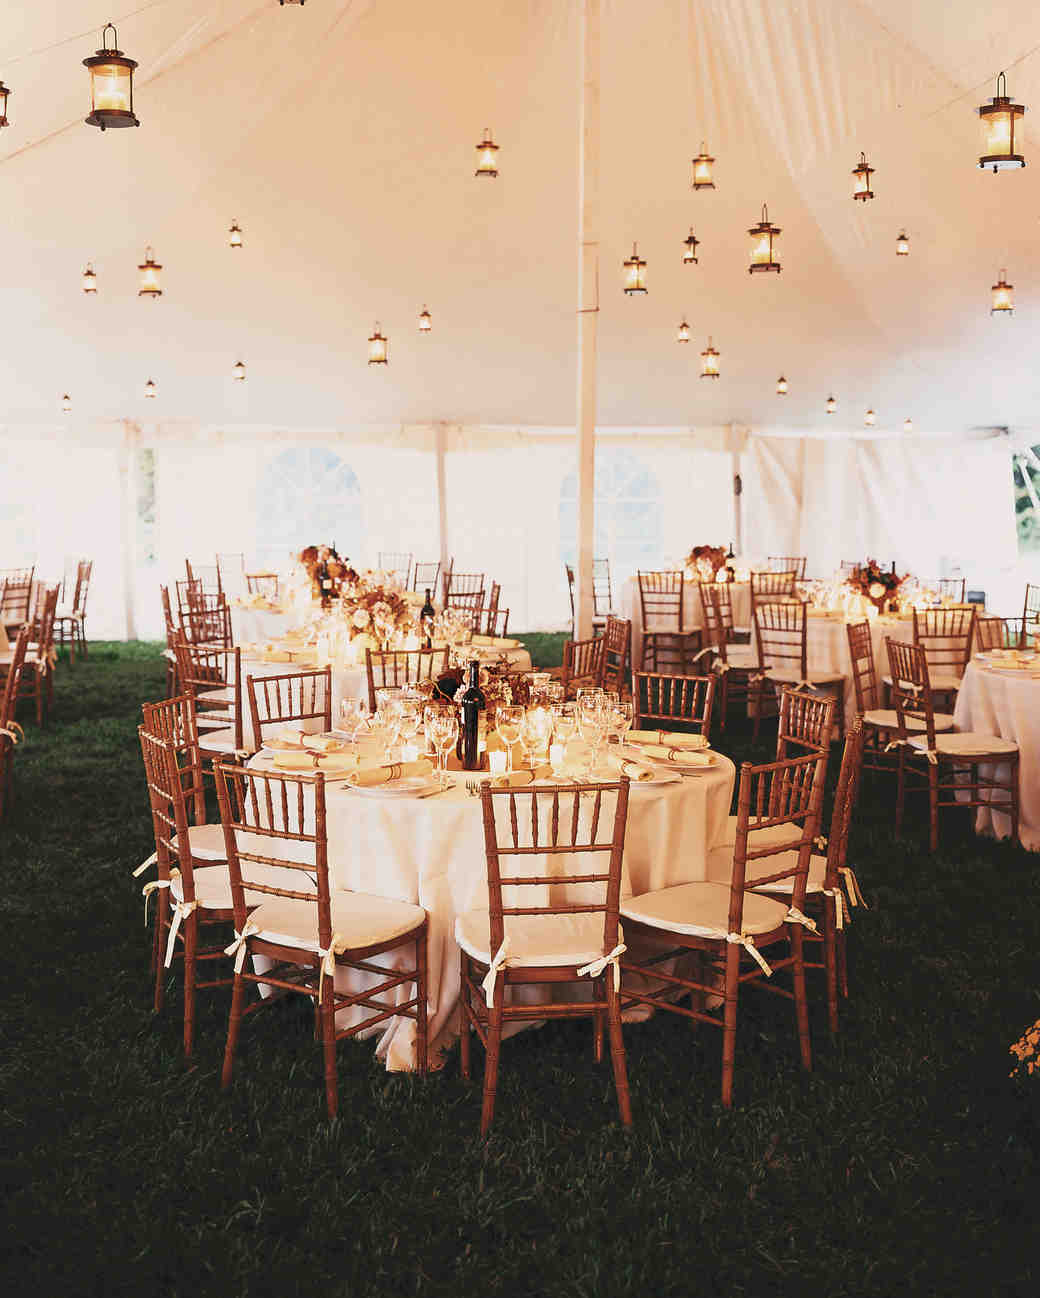 Wedding Banquet: 33 Tent Decorating Ideas To Upgrade Your Wedding Reception